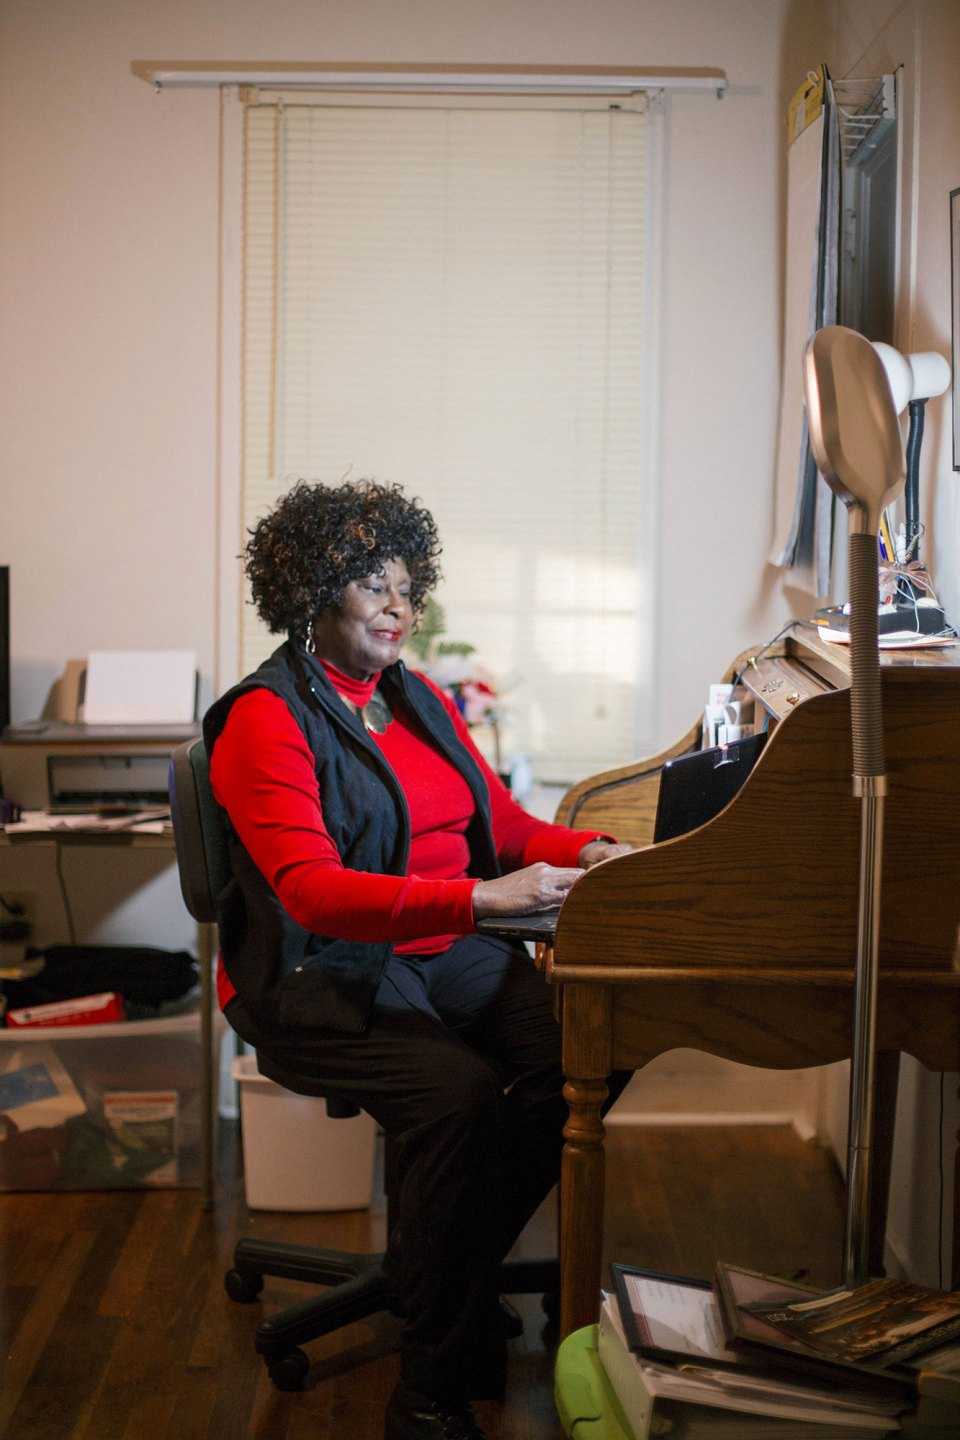 Longtime educator Hymethia W. Thompson, 69, came out of retirement to teach English after learning that Jackson Public Schools were looking for help in local classrooms.